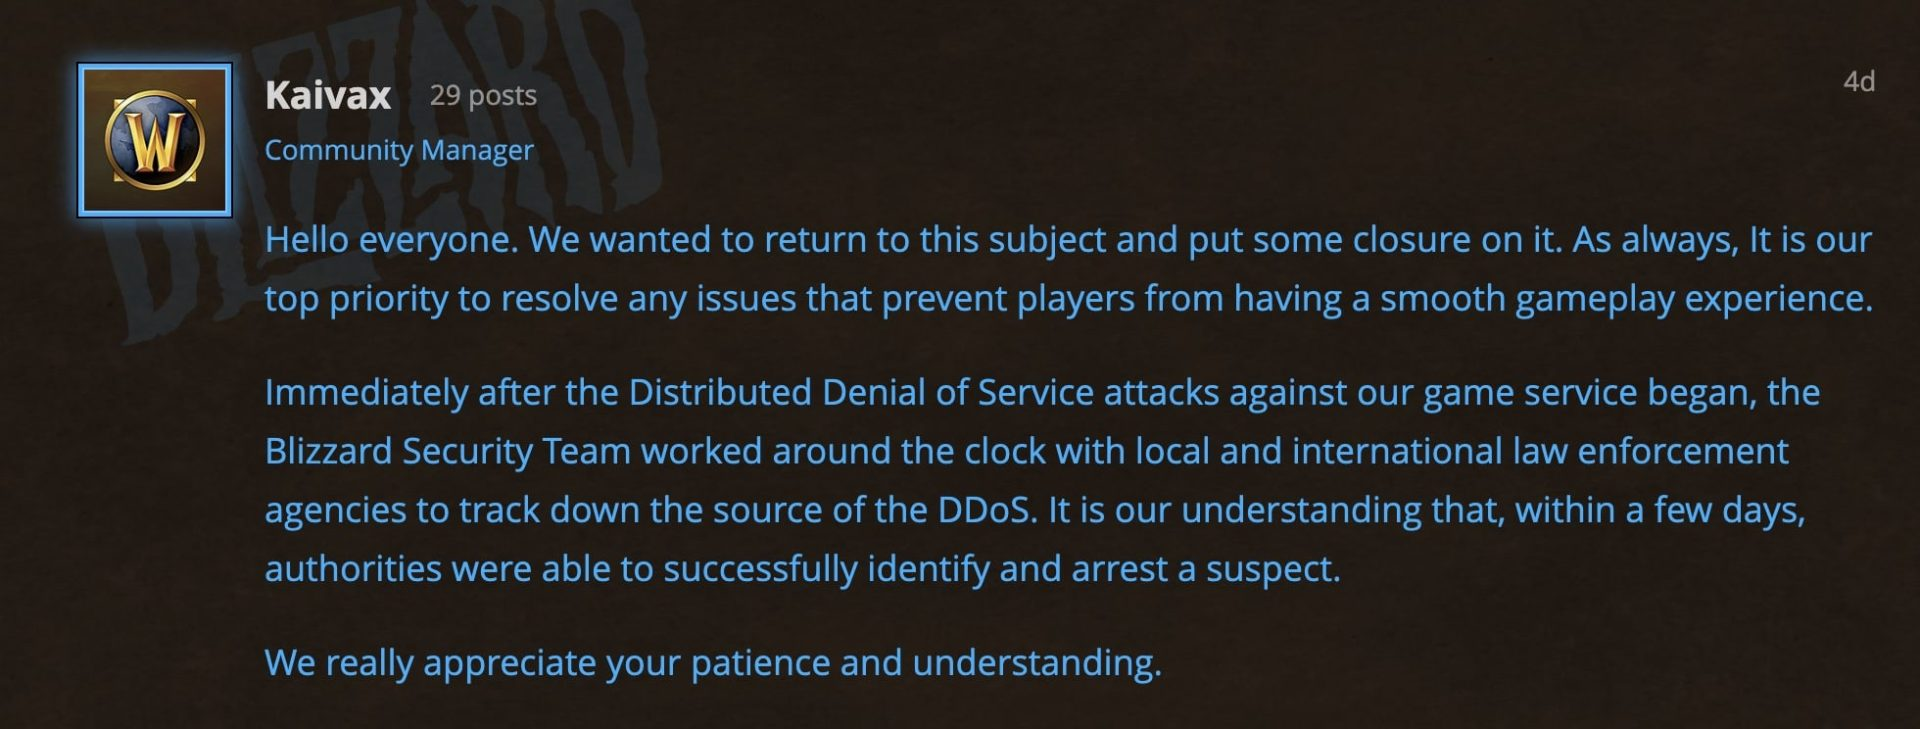 - wow ddos statement - World of Warcraft's suspected DDoS attacker has been arrested